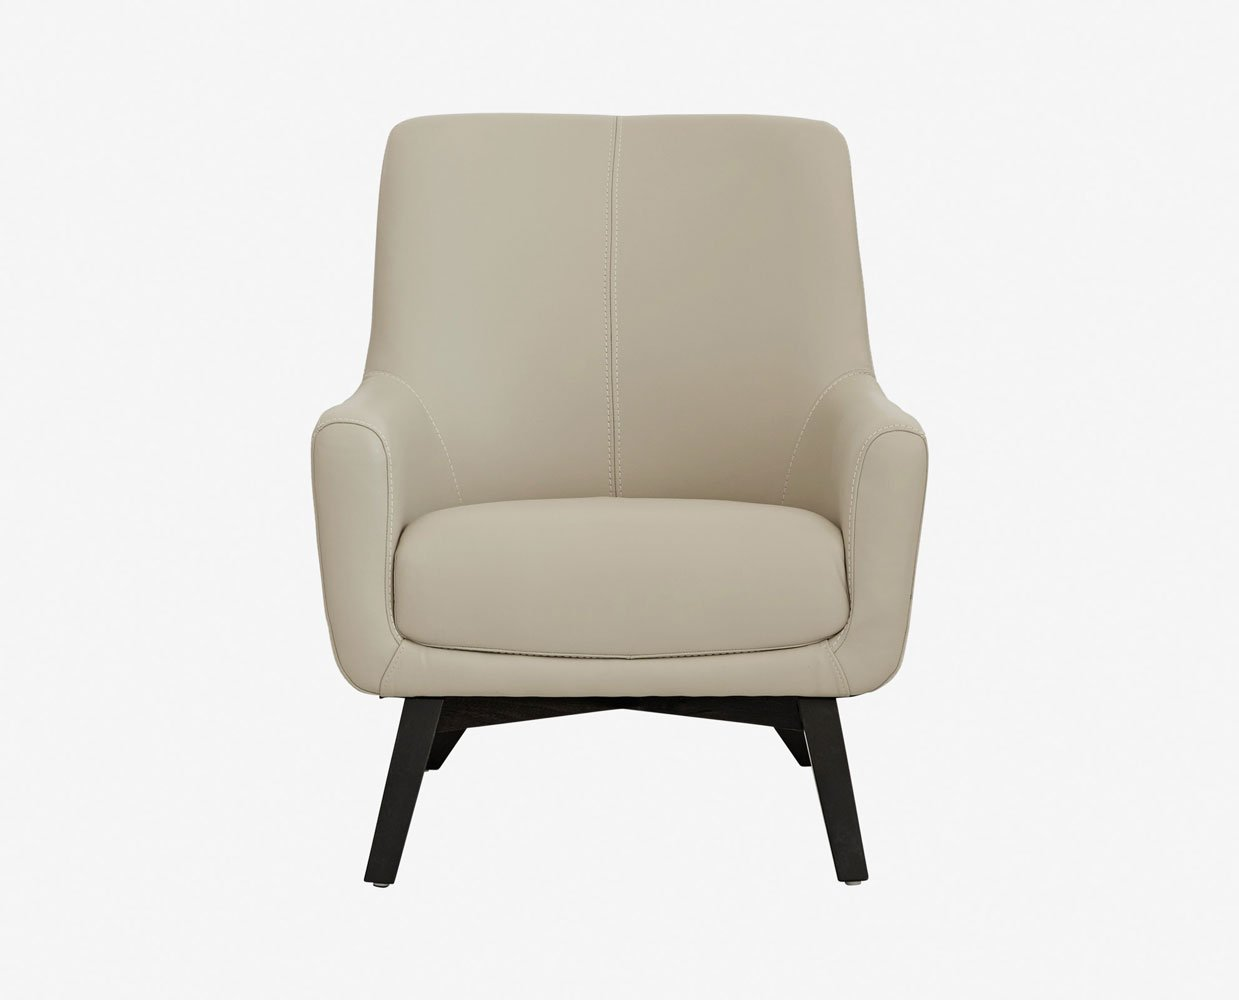 Gisella Leather Chair